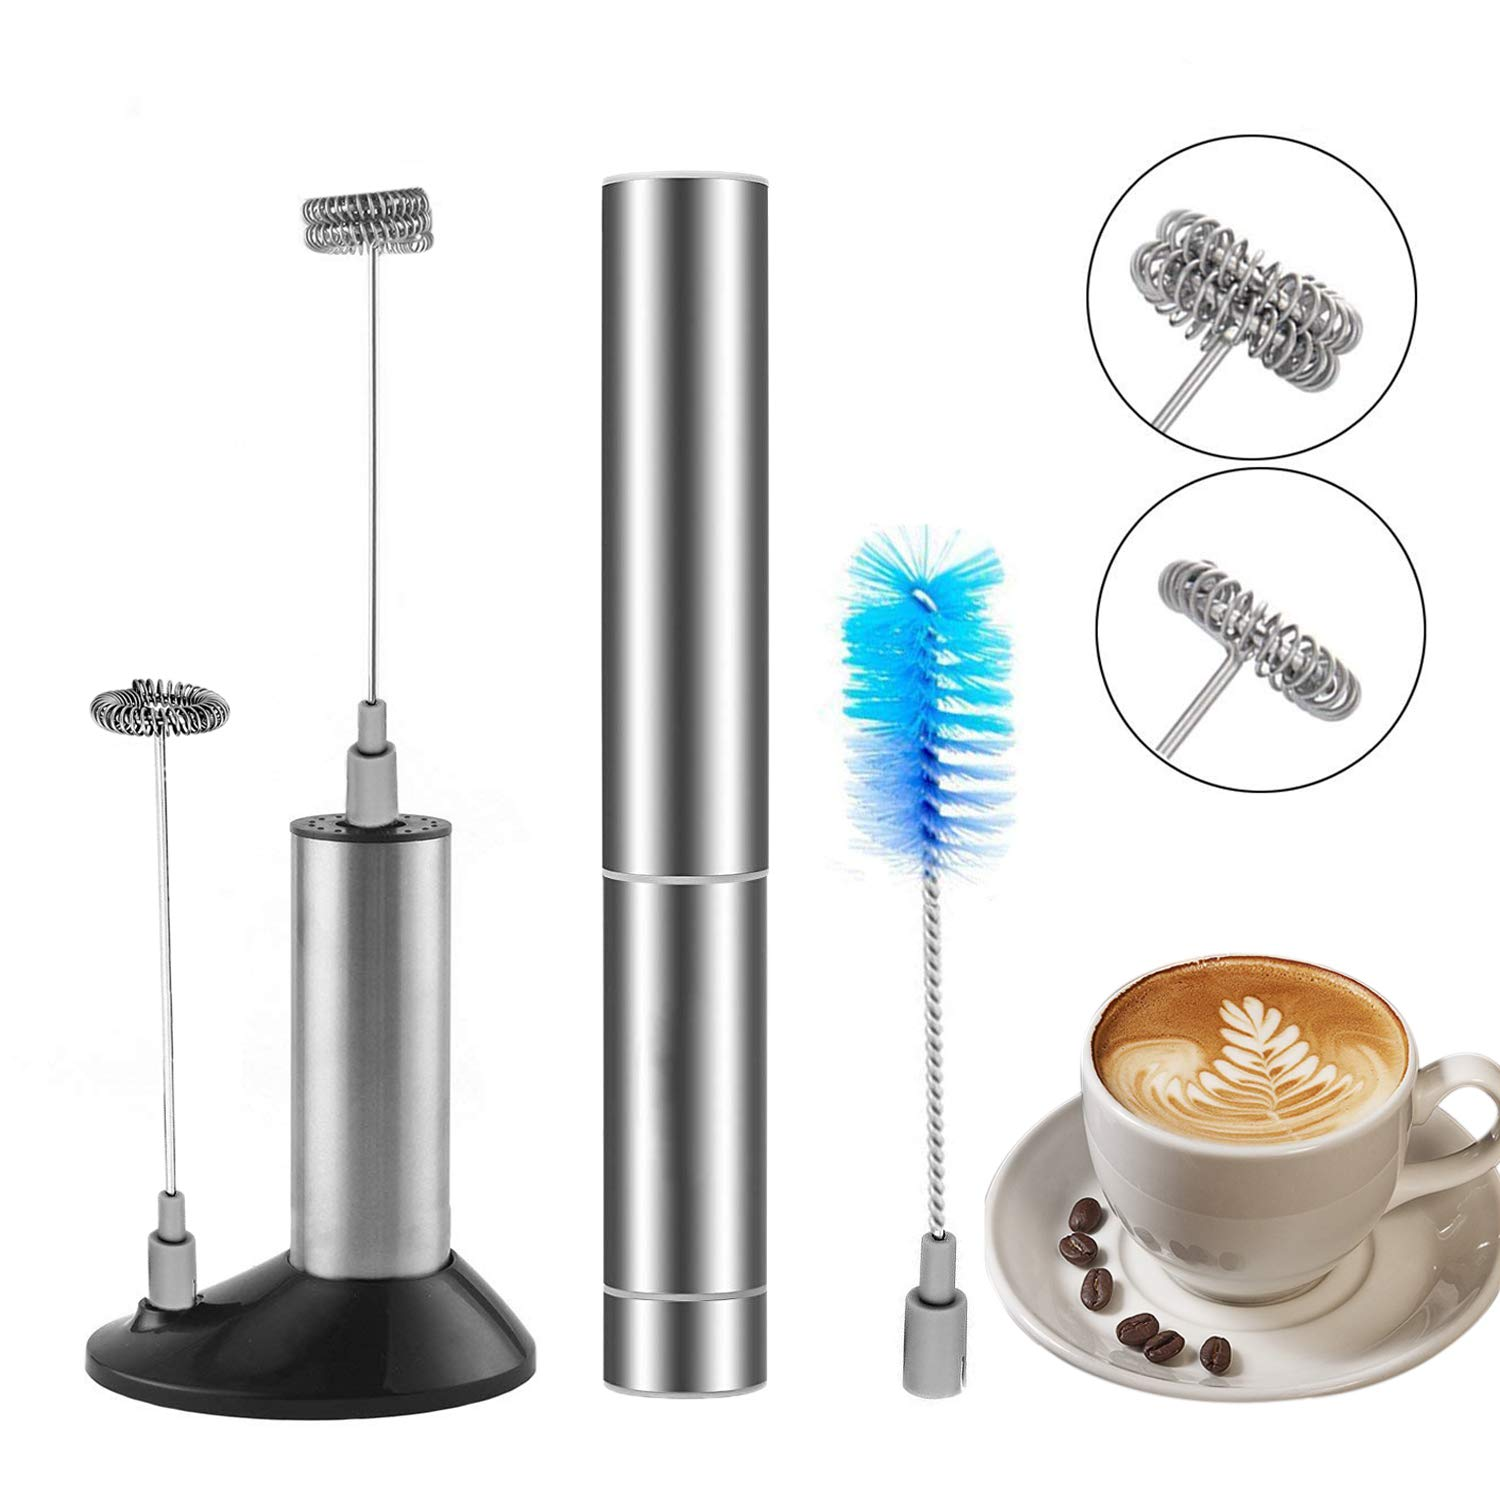 Electric Milk Frother, Handheld Foam Maker, Battery Operated Whisk, Powerful Electric Stainless Steel Foam Maker Beater With Double and Single Spring Whisk Head, Cleaning Brush, Storage Tube and Storage Stand